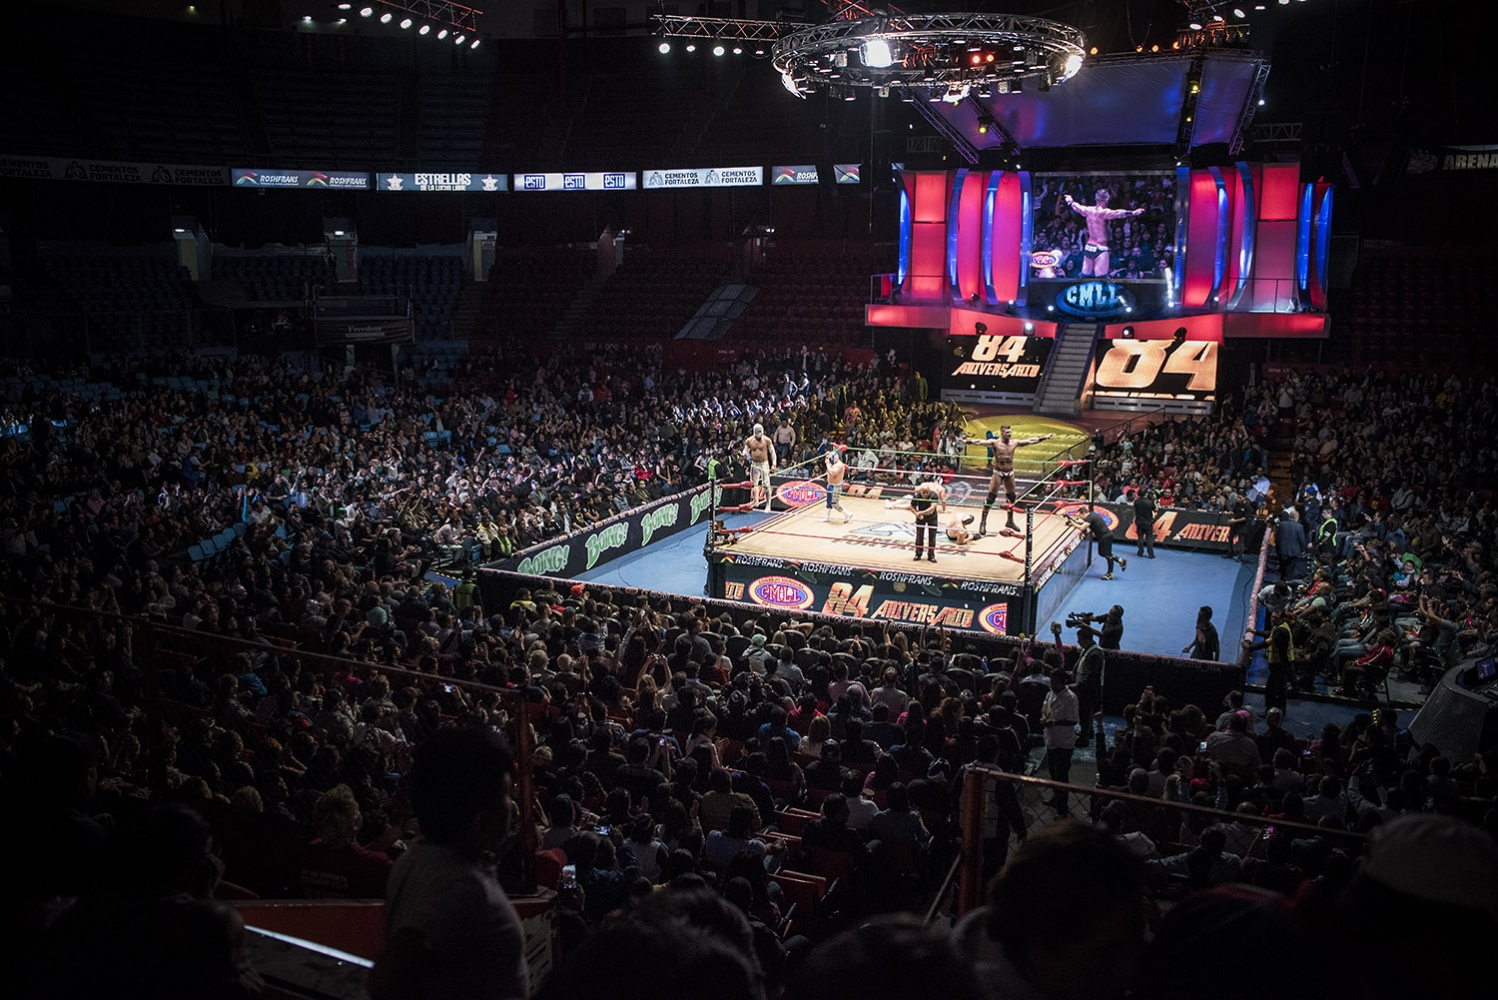 "Arena México is an indoor arena in Mexico City, primarily used for professional wrestling, or  lucha libre . Its shows are promoted by Consejo Mundial de Lucha Libre (CMLL). The building is called the ""cathedral of lucha libre"". Arena México has a seating capacity of 16,500 when configured for professional wrestling or boxing events. Twice a week it's always jammed with people assisting to the wrestling show ."